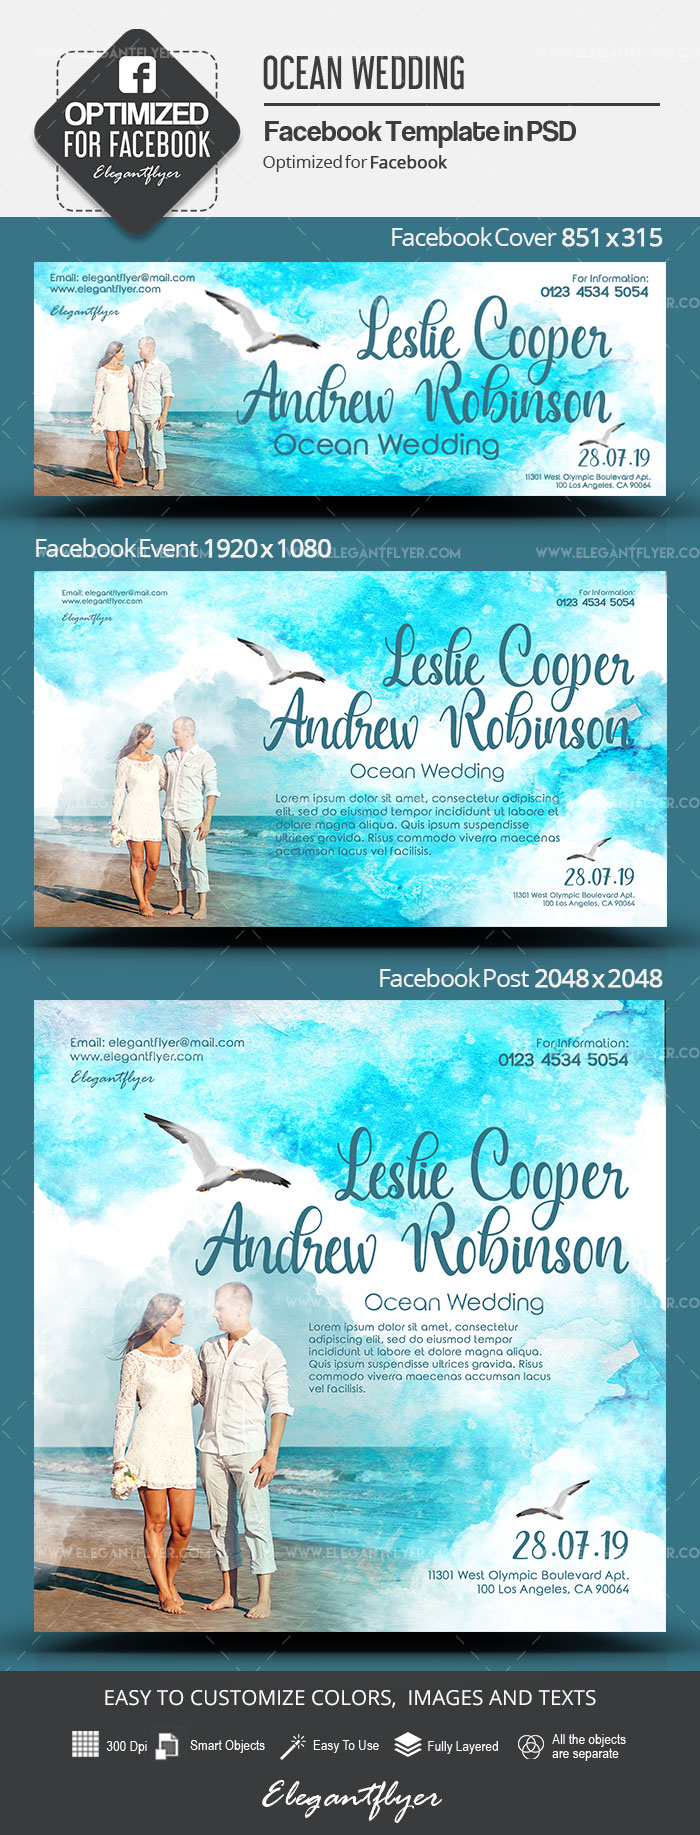 Ocean Wedding – Facebook Cover Template in PSD + Post + Event cover